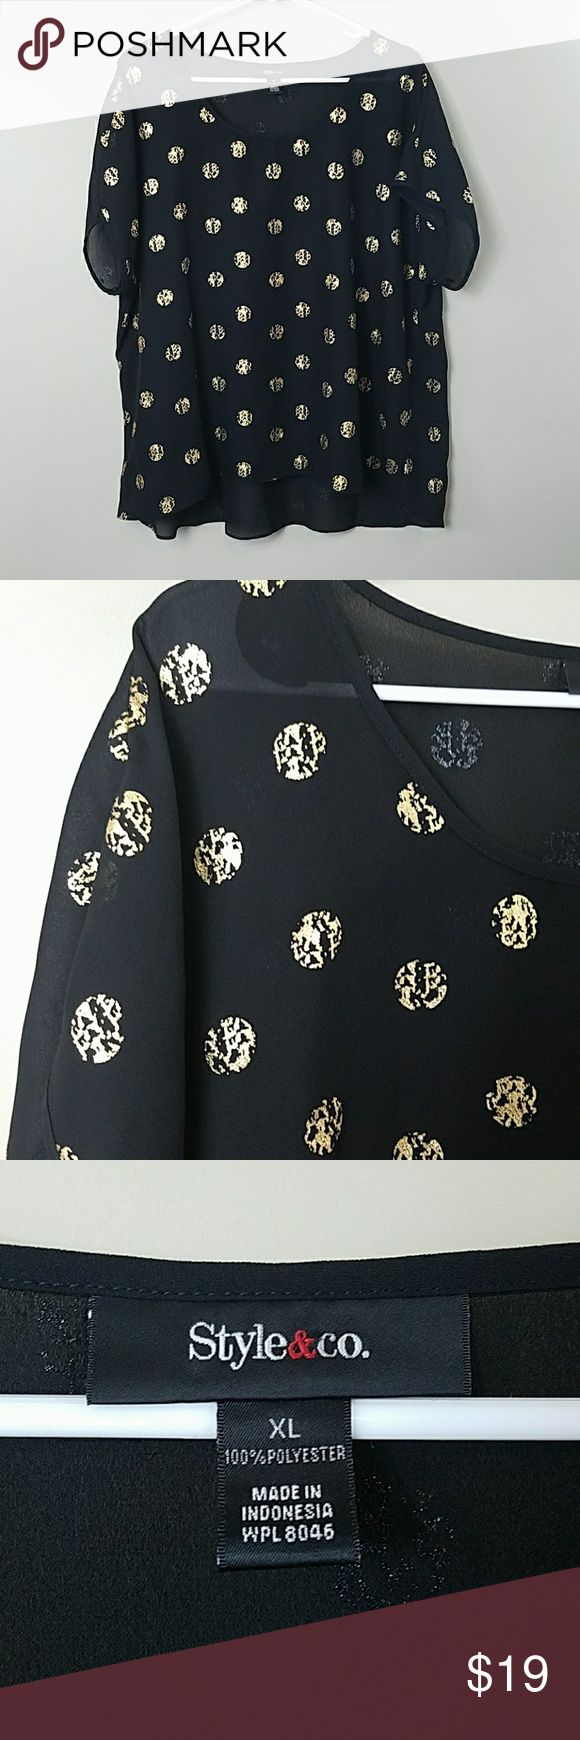 """Style & Co Gold Polka Dot Blouse Style & Co Gold Polka Dot Blouse.   Size XL.  Beautiful black, semi-sheer short sleeve top with gold foil-like polka dots.  Excellent condition! 26"""" across the bust.  27.5"""" long. 100% polyester. Style & Co Tops Blouses"""